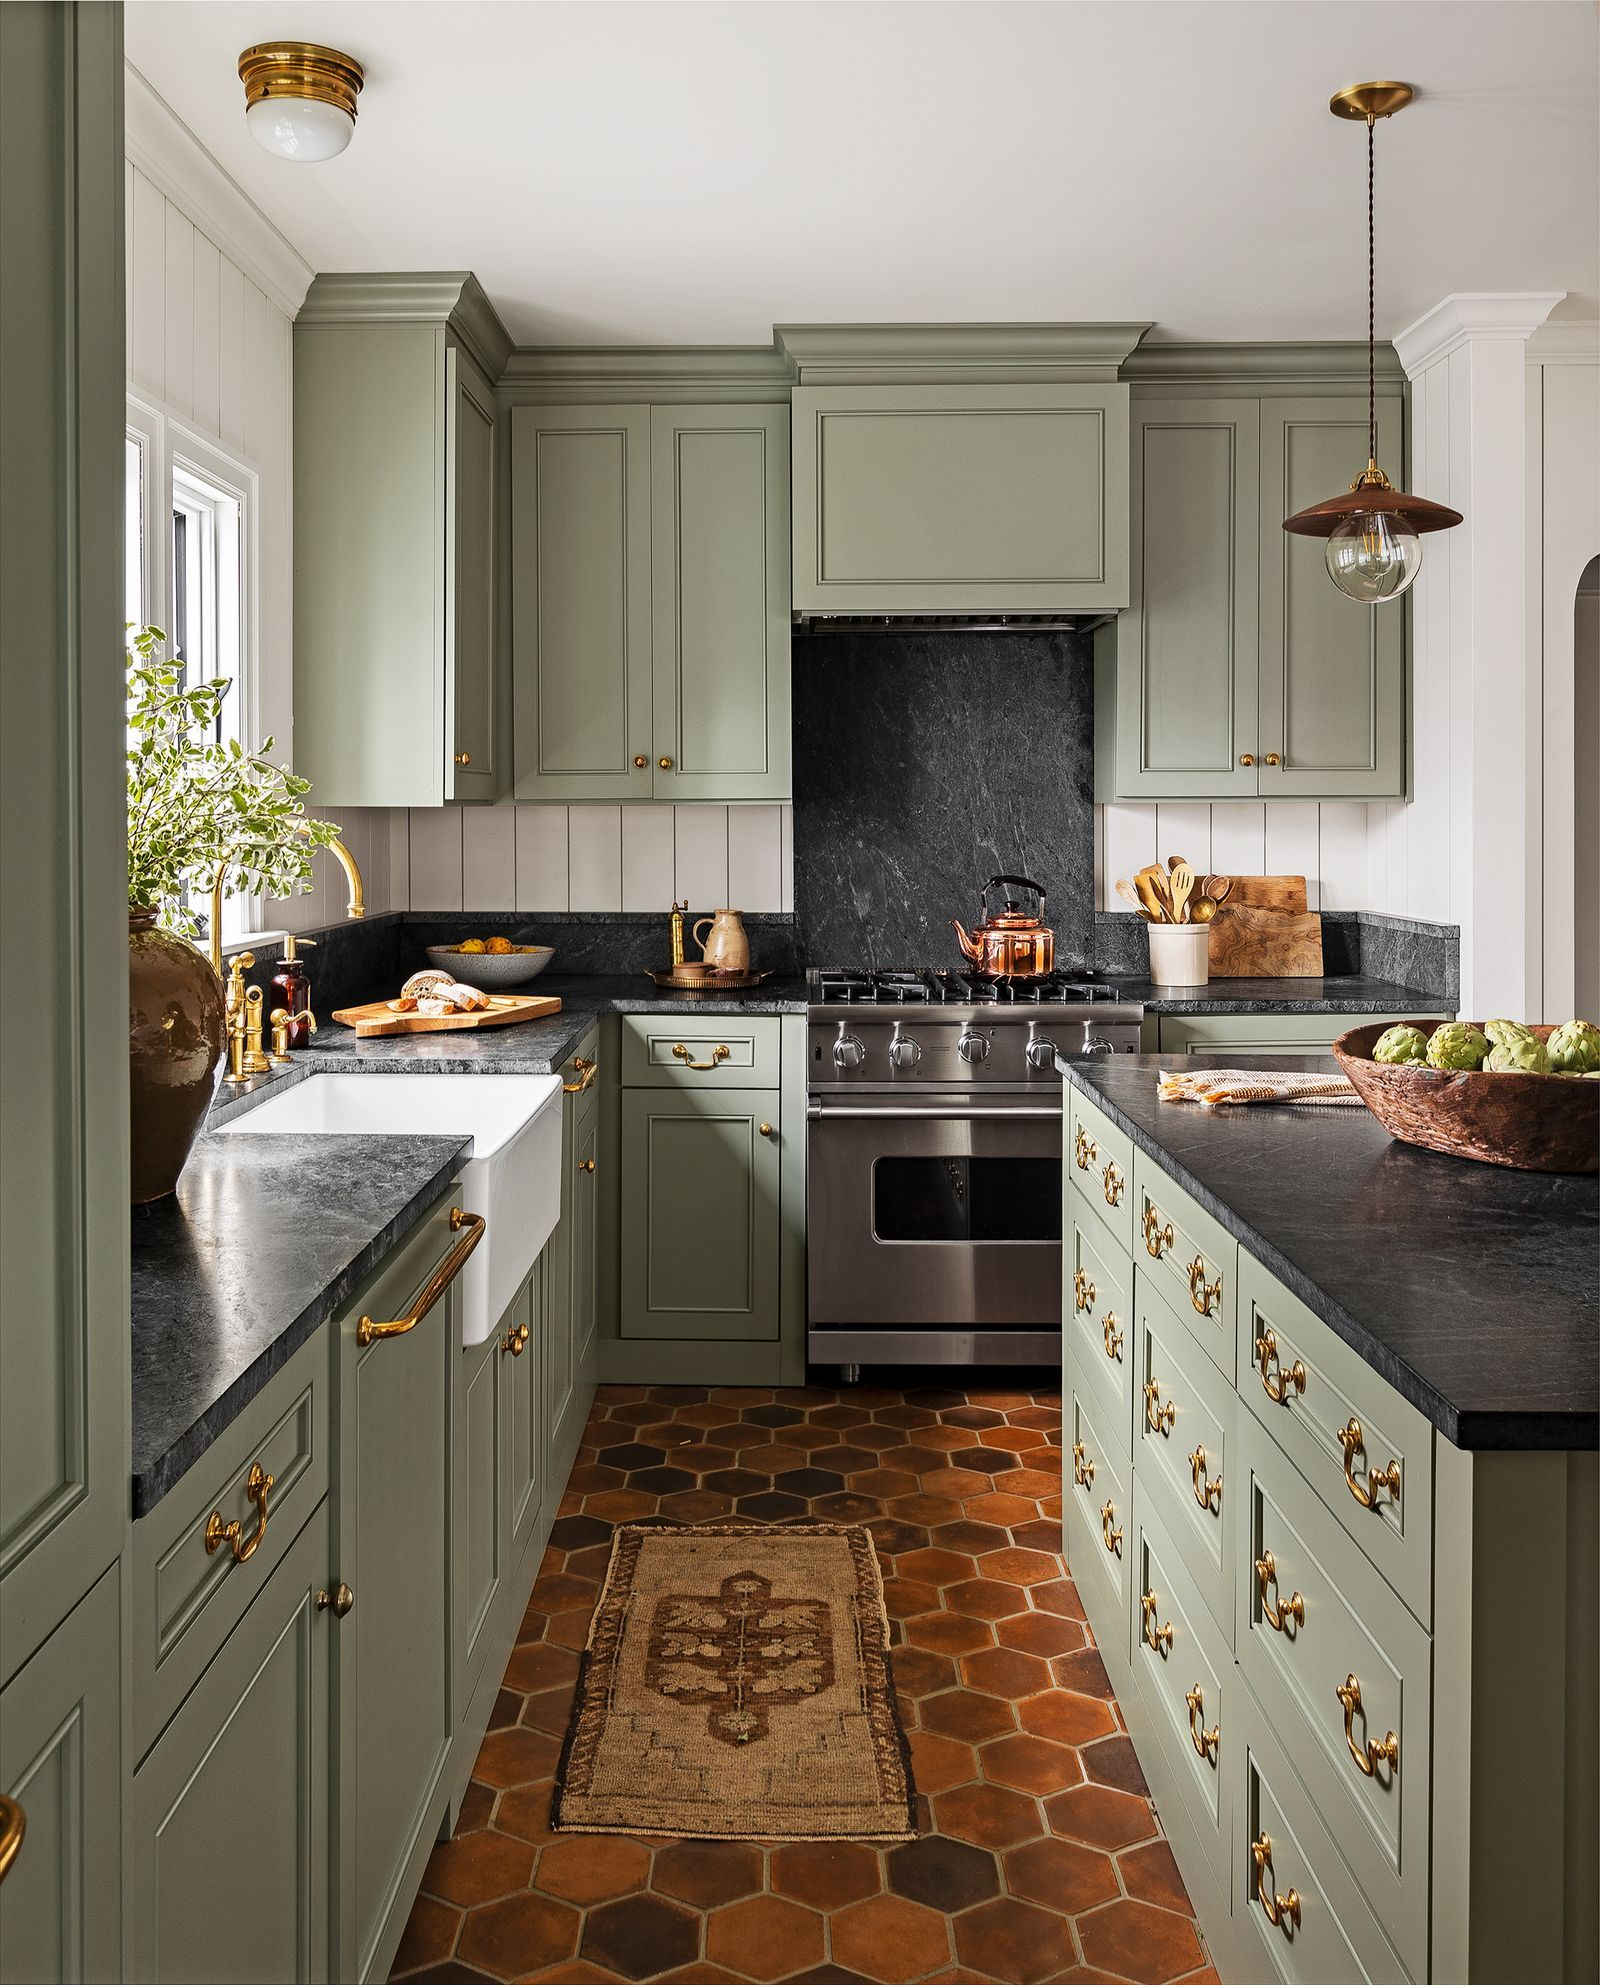 Go Green With These Beautiful Kitchen Cabinet Colors Beautiful Kitchen Cabinets Green Kitchen Decor Green Kitchen Cabinets